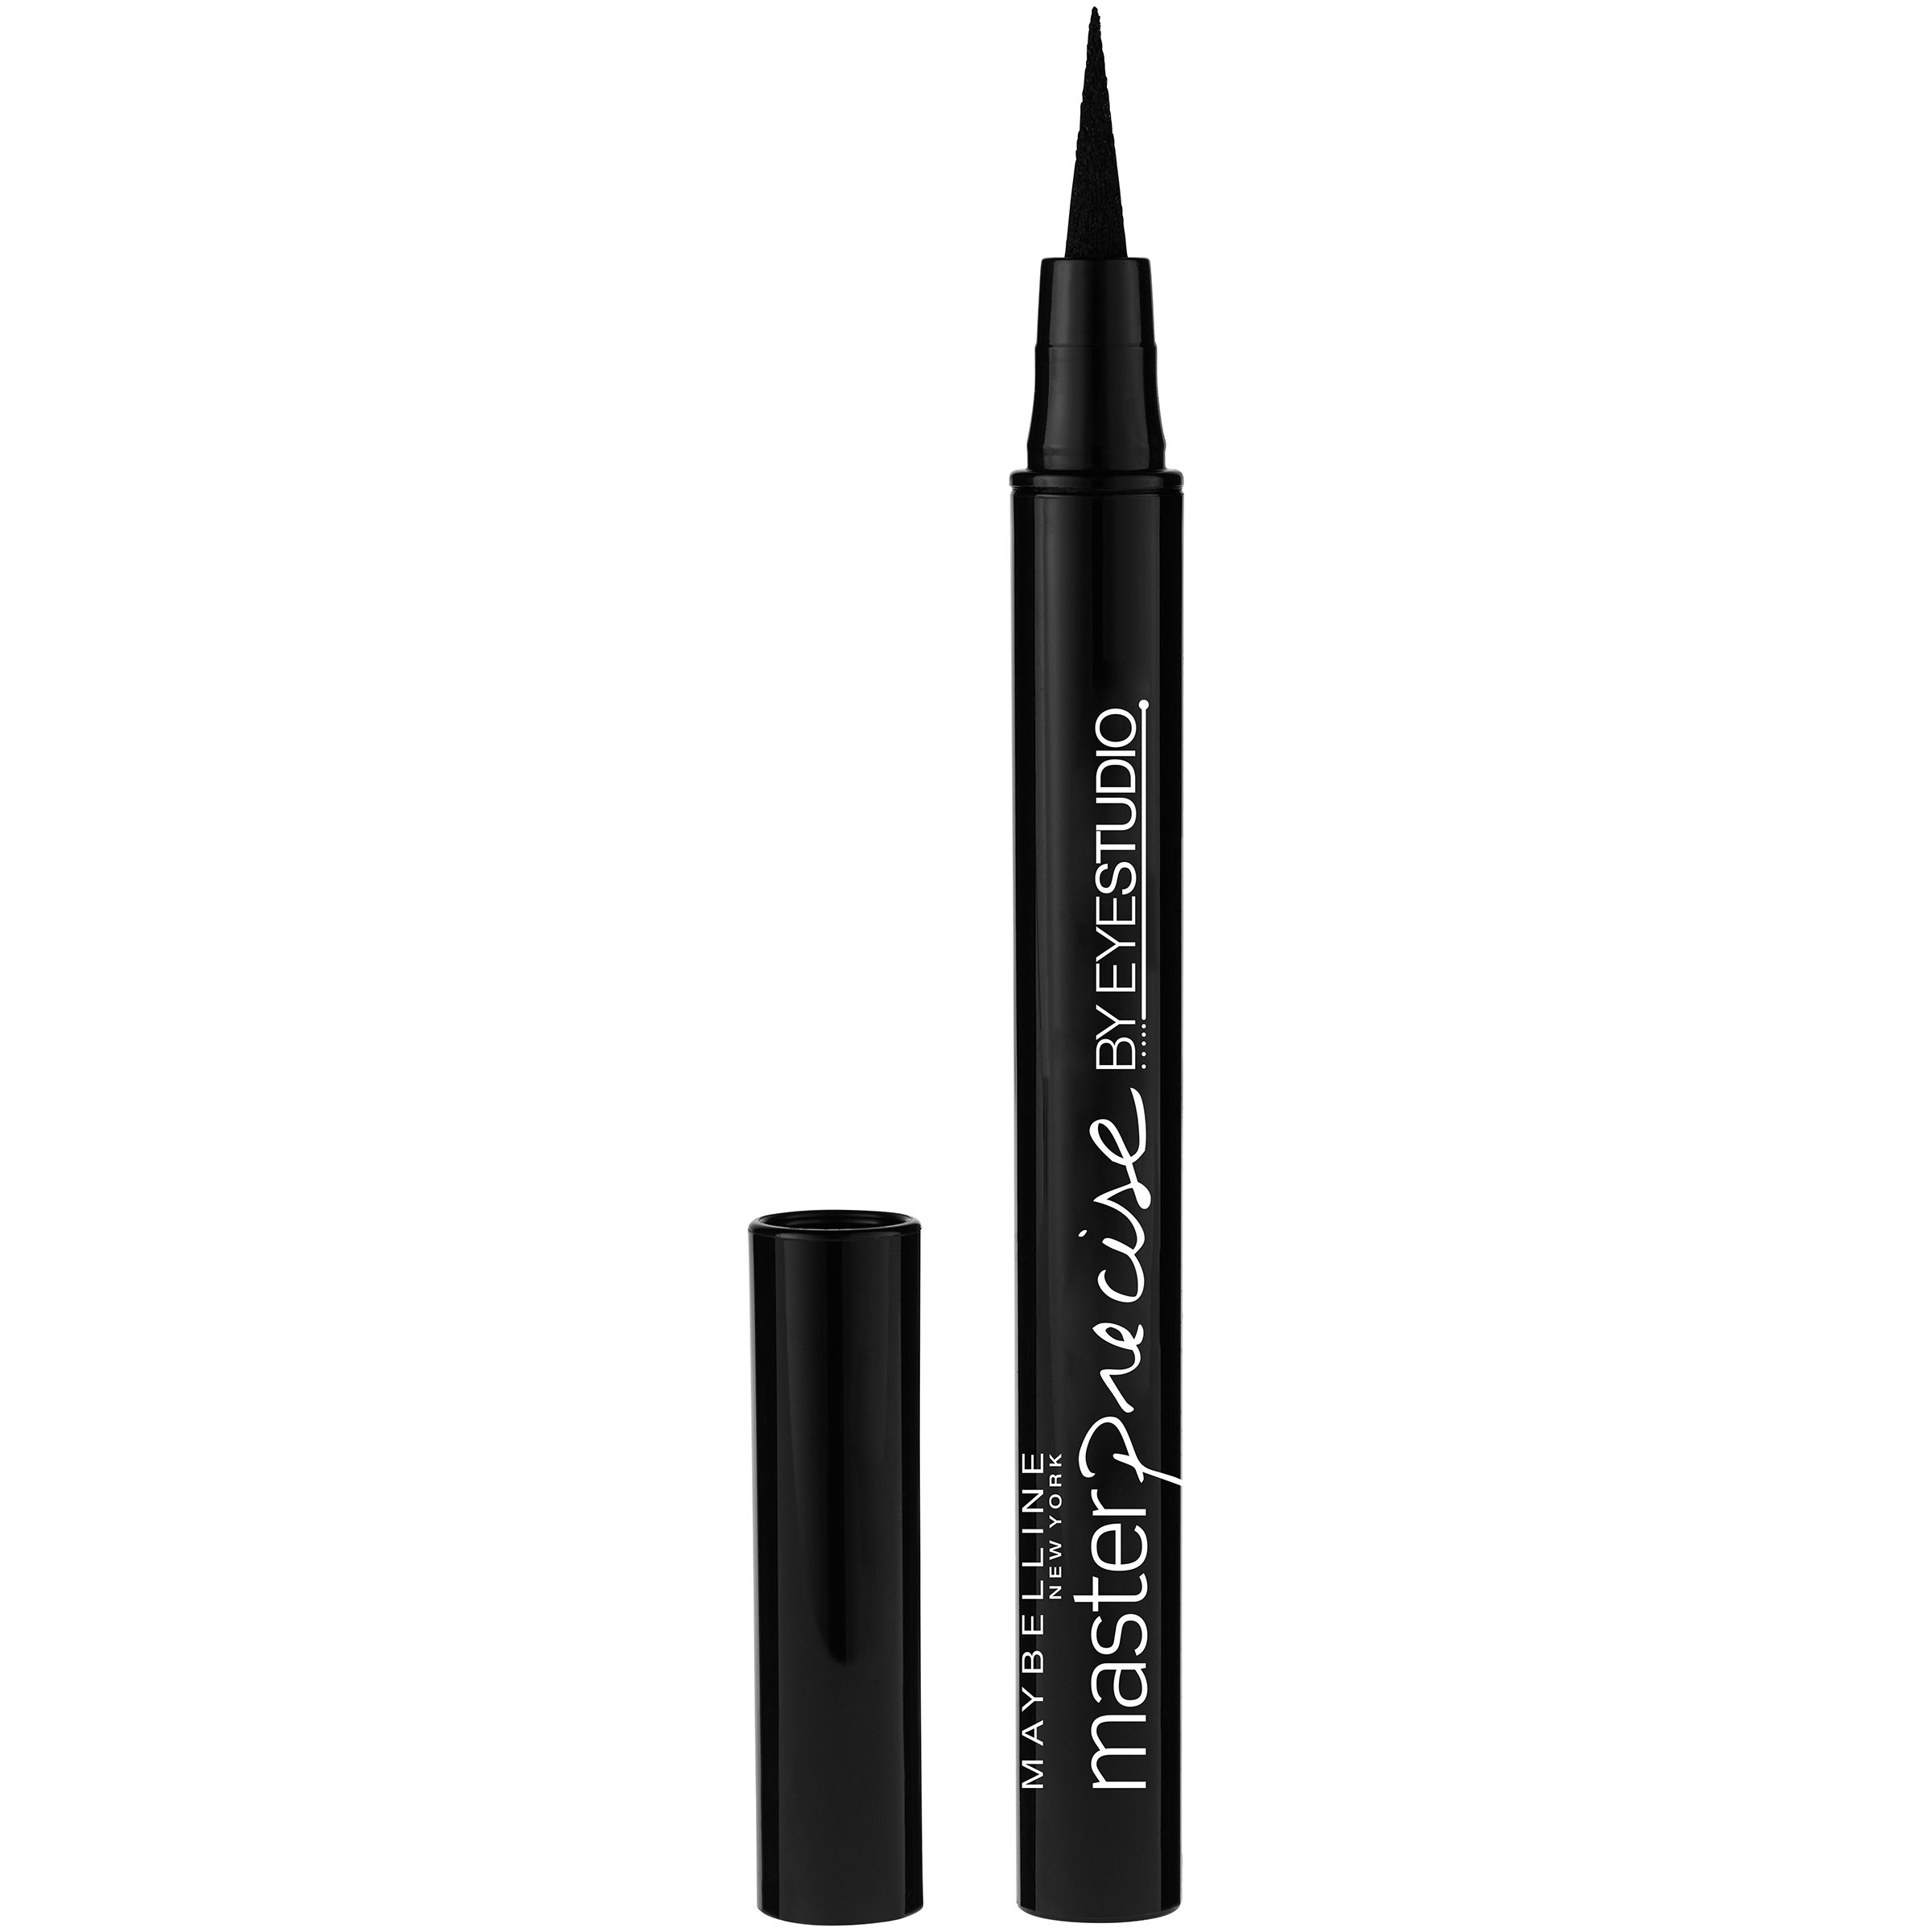 Maybelline Eyestudio Master Precise Ink Pen Eyeliner, Black, 0.037 fl. oz